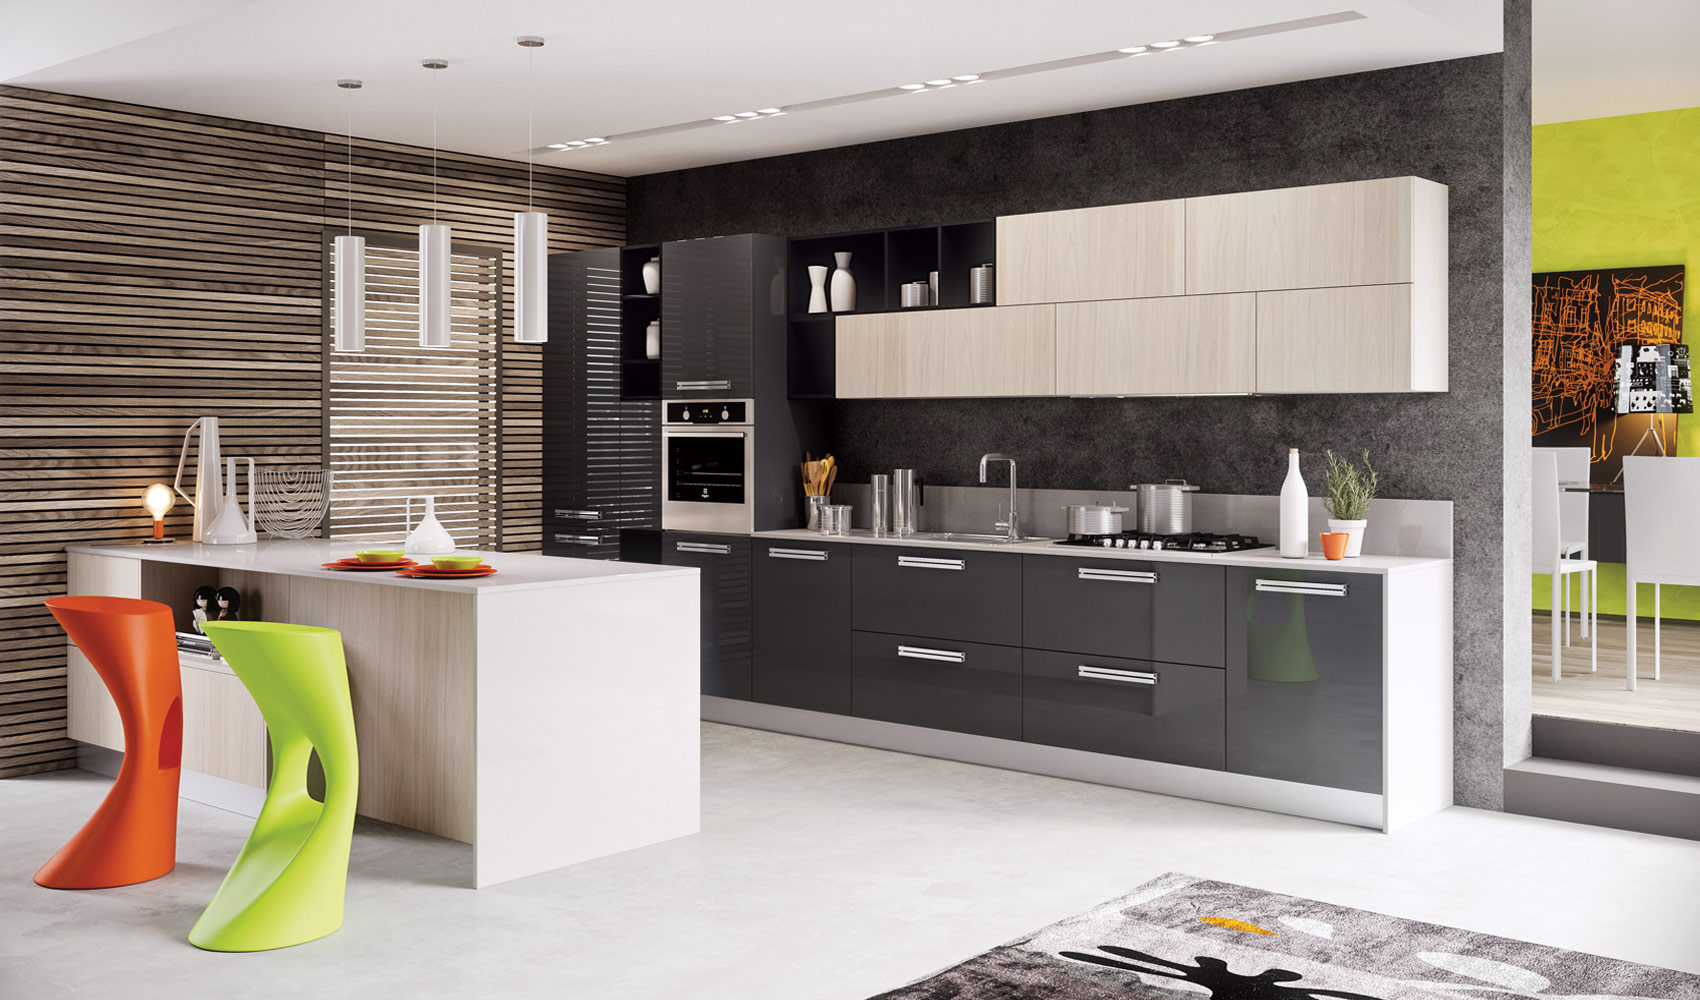 Contemporary kitchen design interior design ideas for Kitchen interior ideas